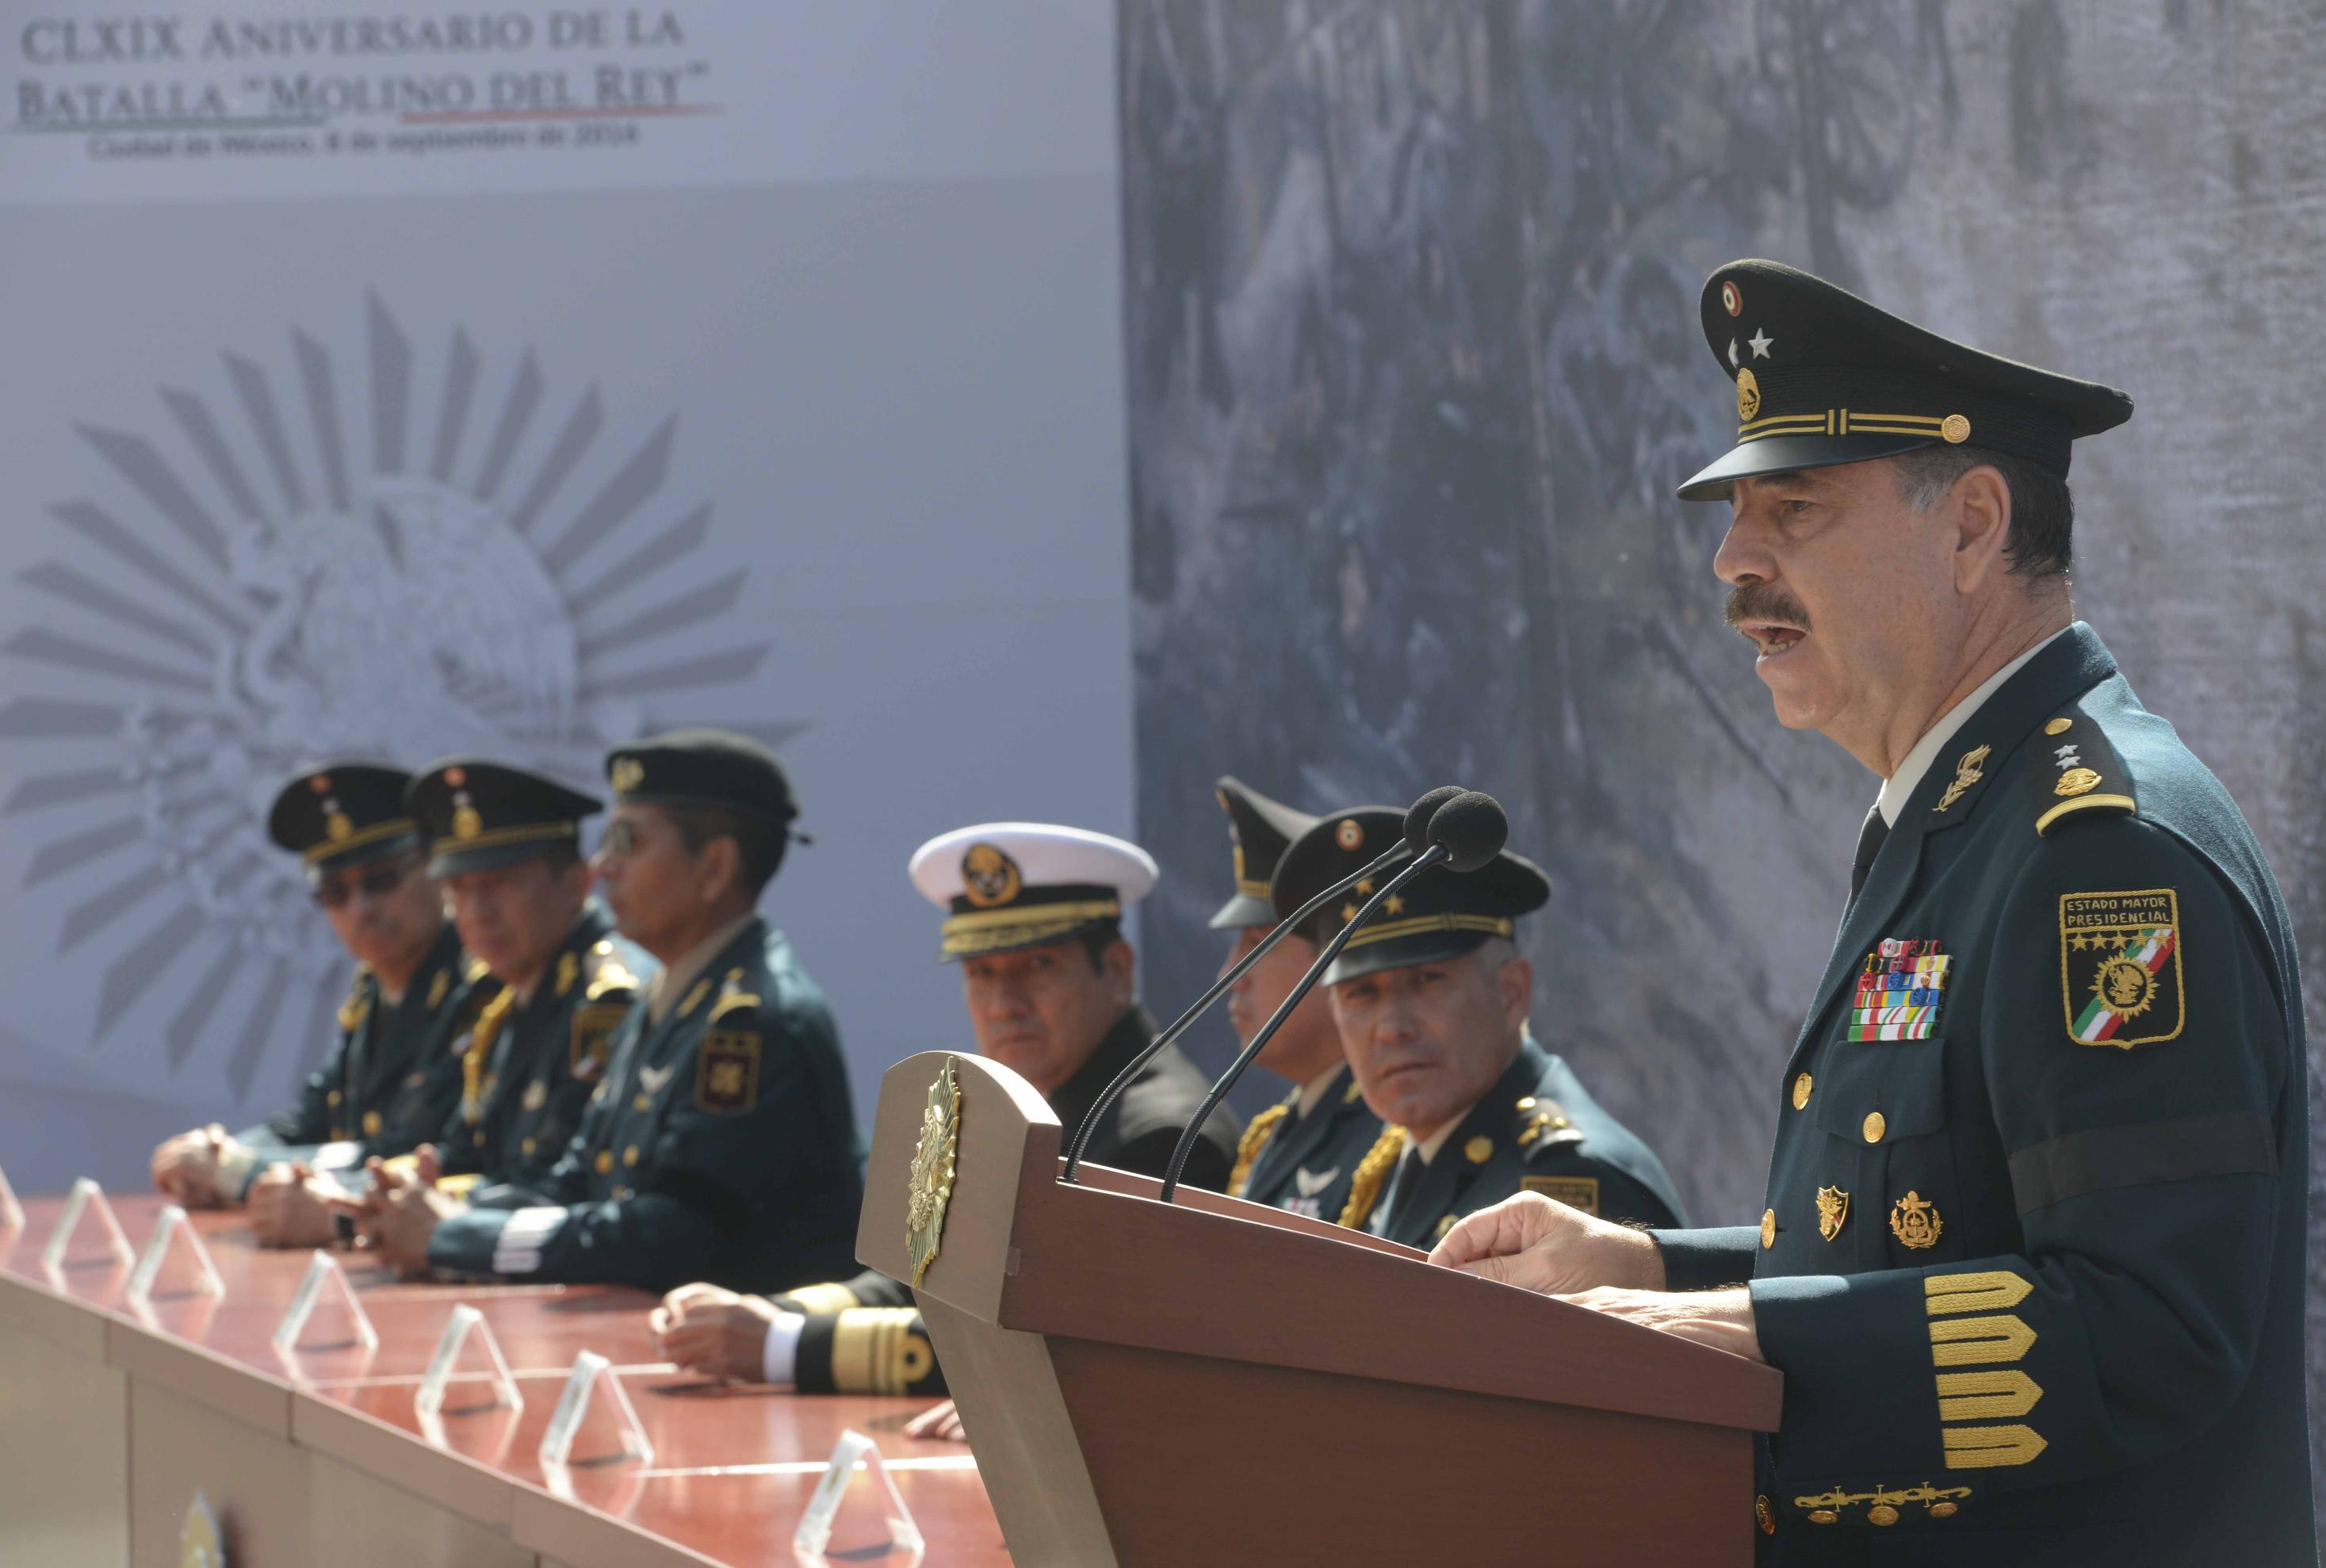 General Roberto Miranda Moreno presented awards during the ceremony of the 169th anniversary of the Battle of Molino del Rey.